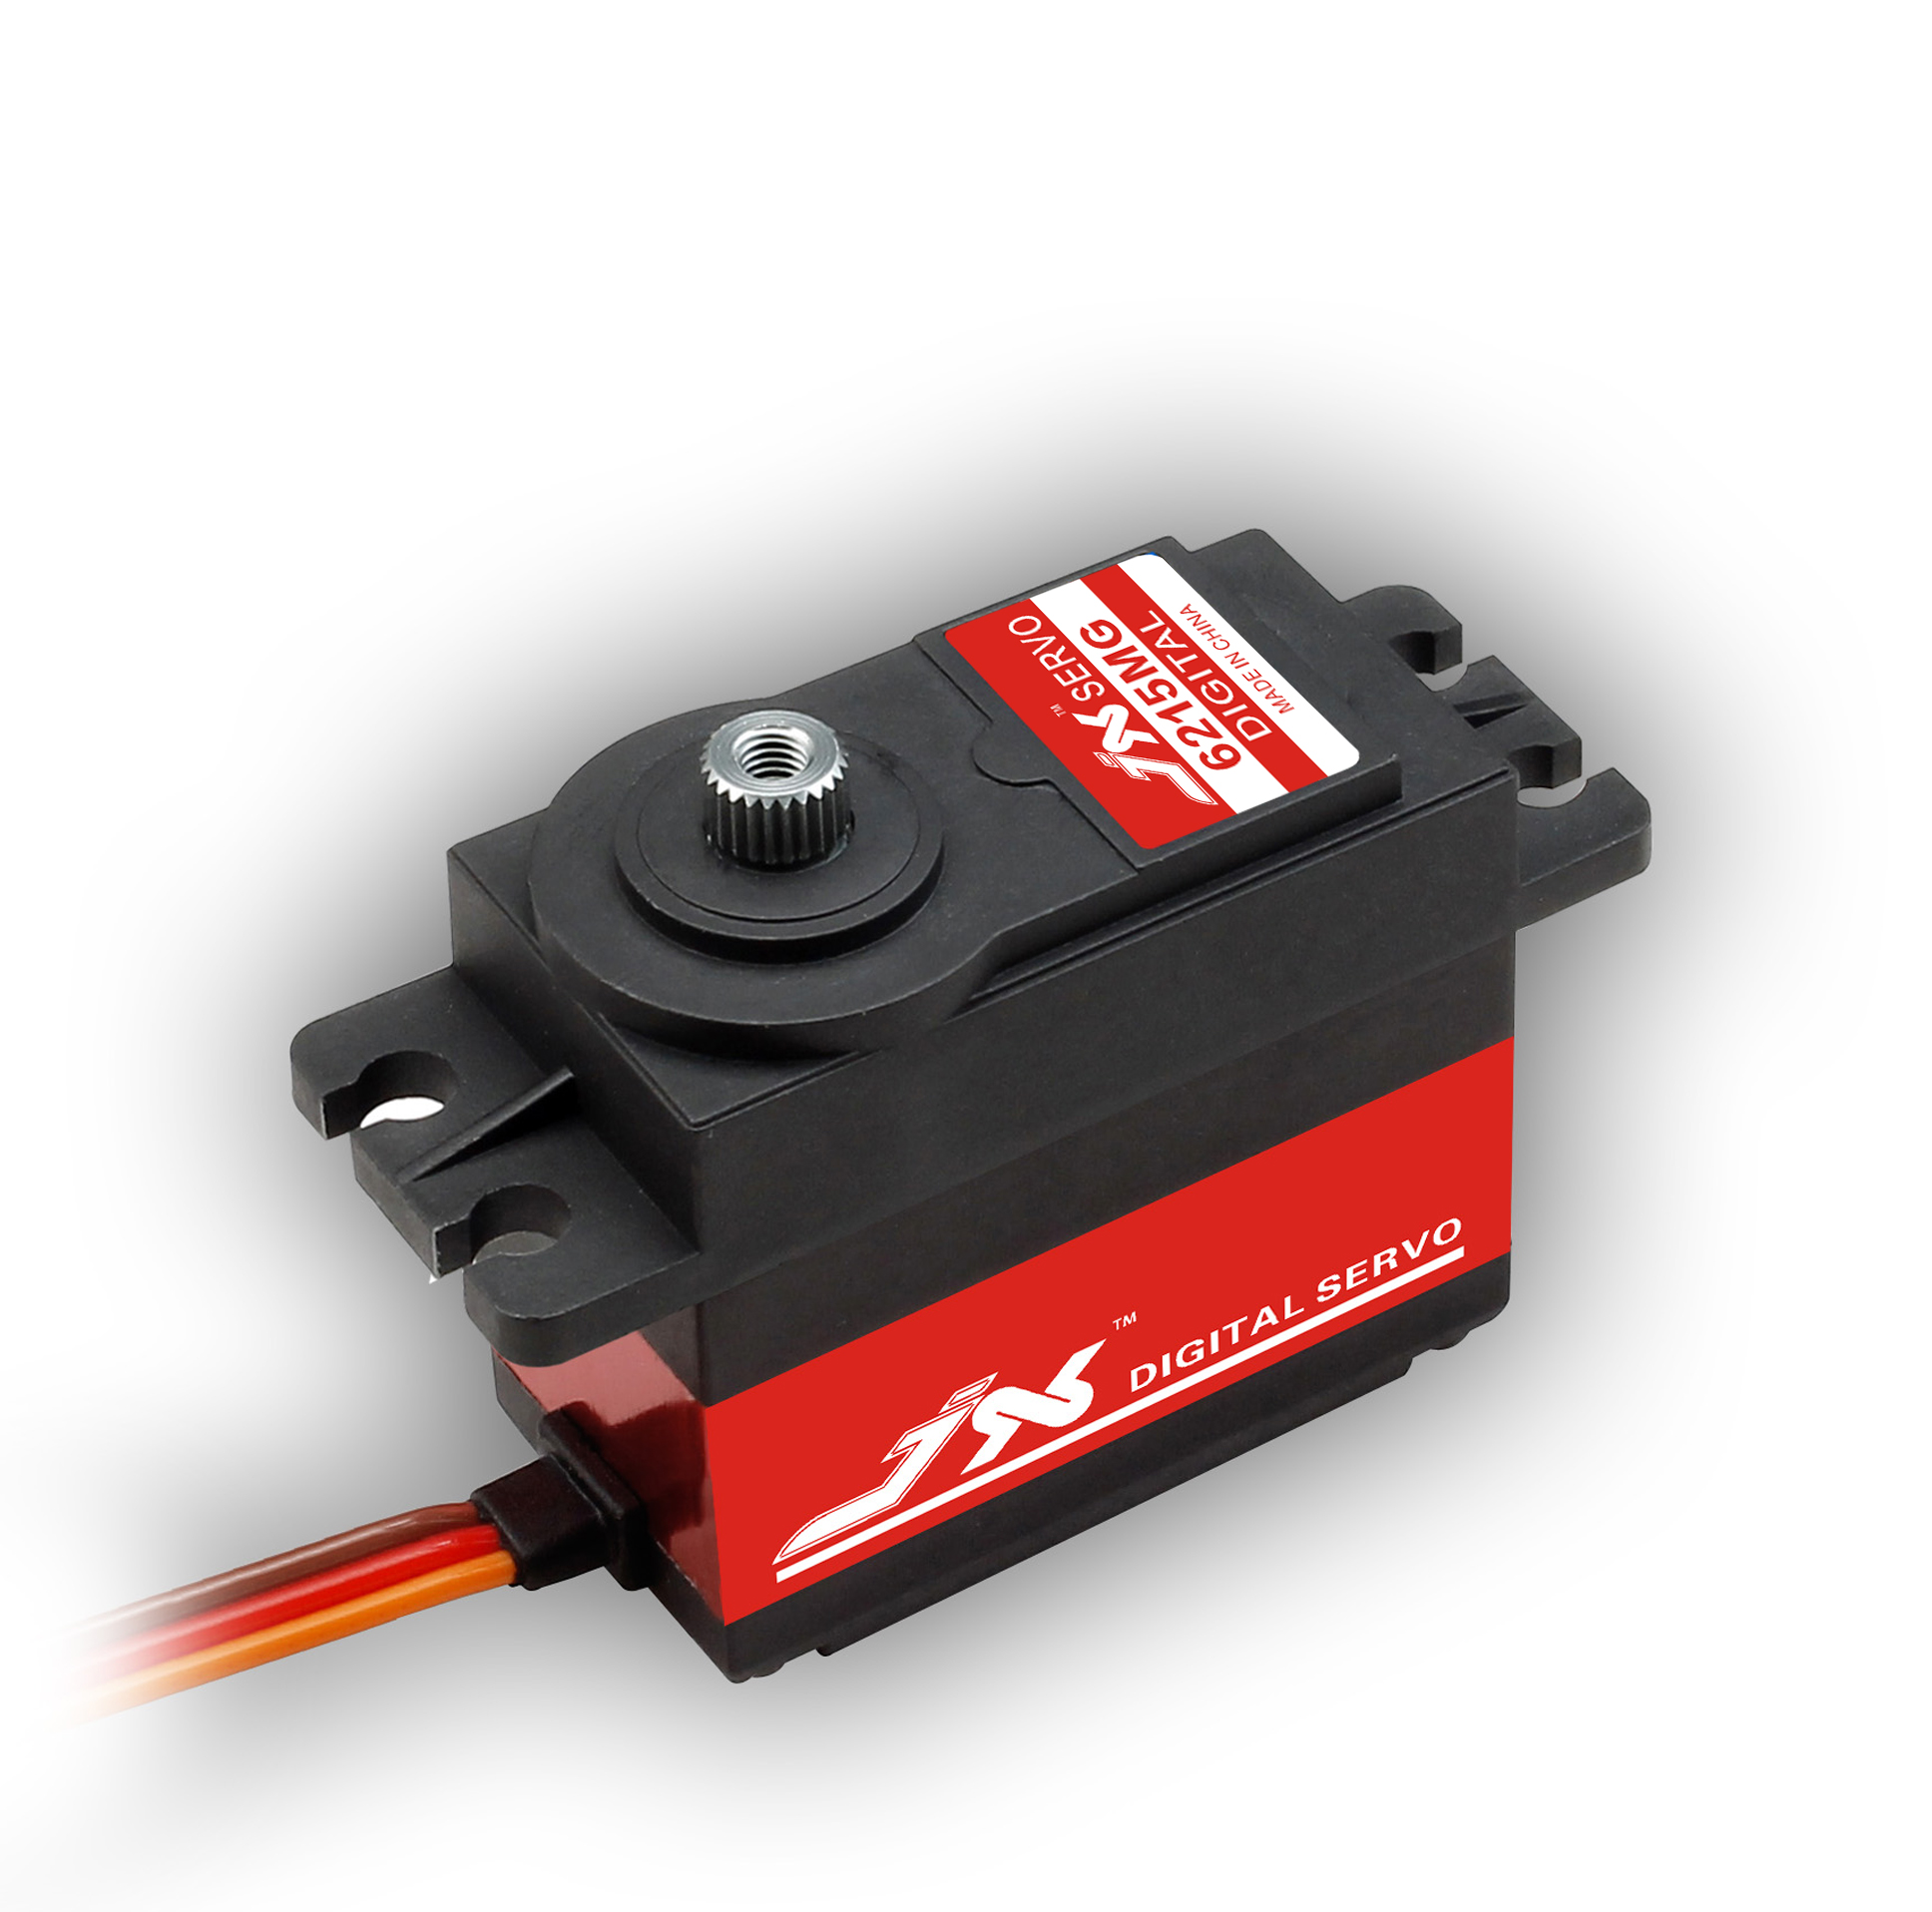 Superior Hobby JX PDI-6215MG 15KG High Precision Metal Gear Digital Standard Servo superior hobby jx pdi hv5212mg high precision metal gear full cnc aluminium shell high voltage digital coreless short servo